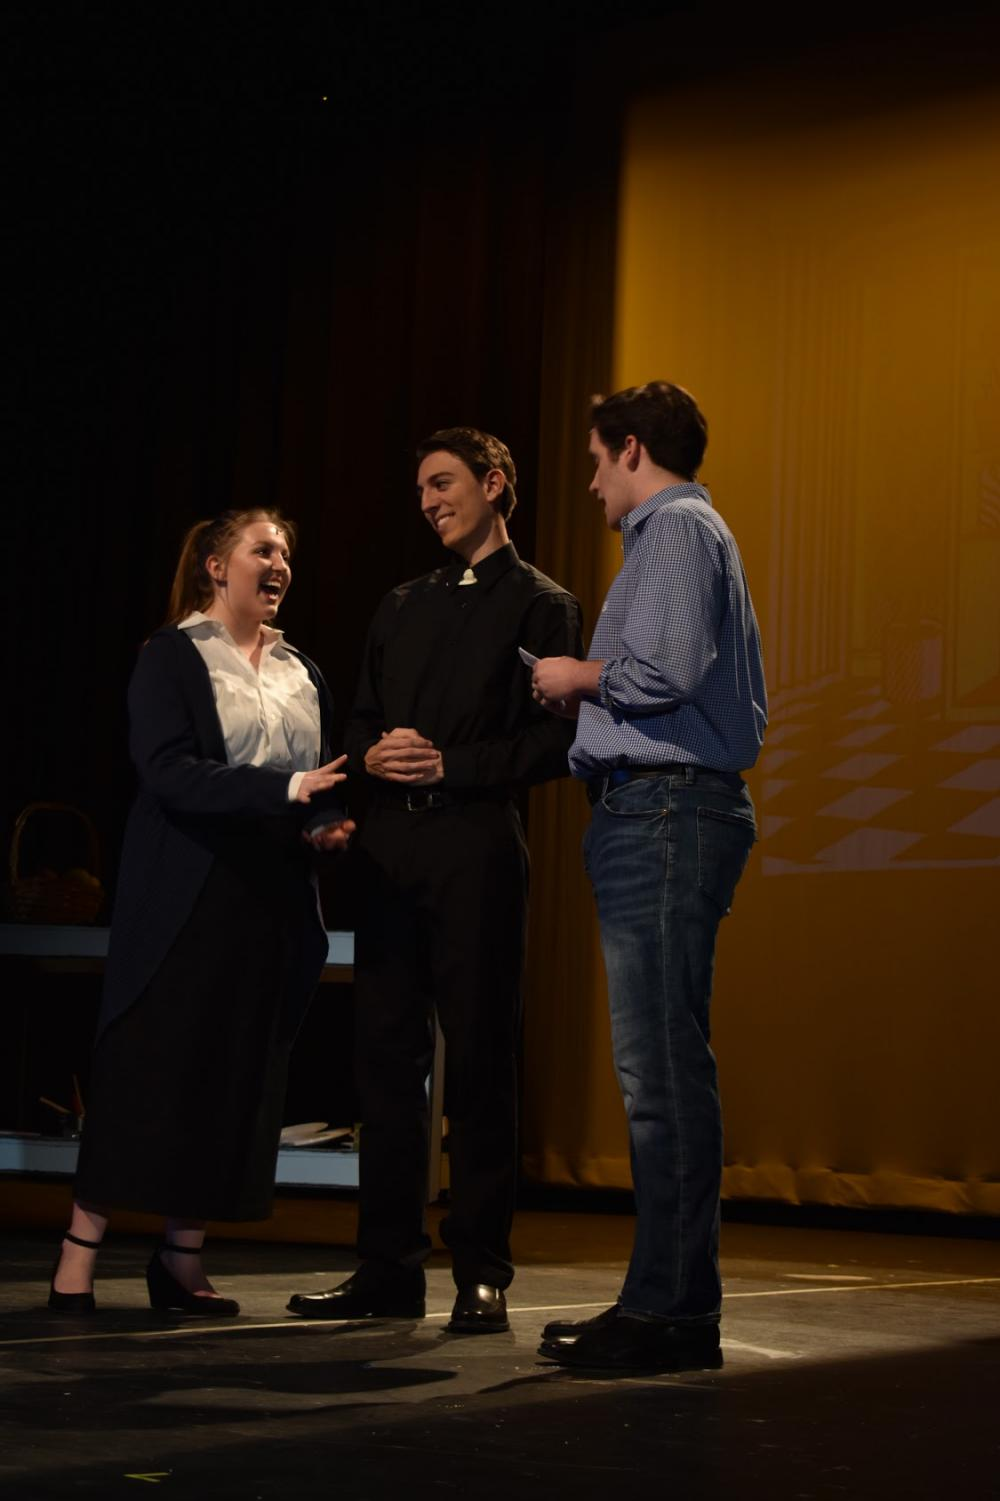 Sophie Stapleton, Henry Trochlil, and Jack Powell rehearse for the show (Photo by Riley Draddy)